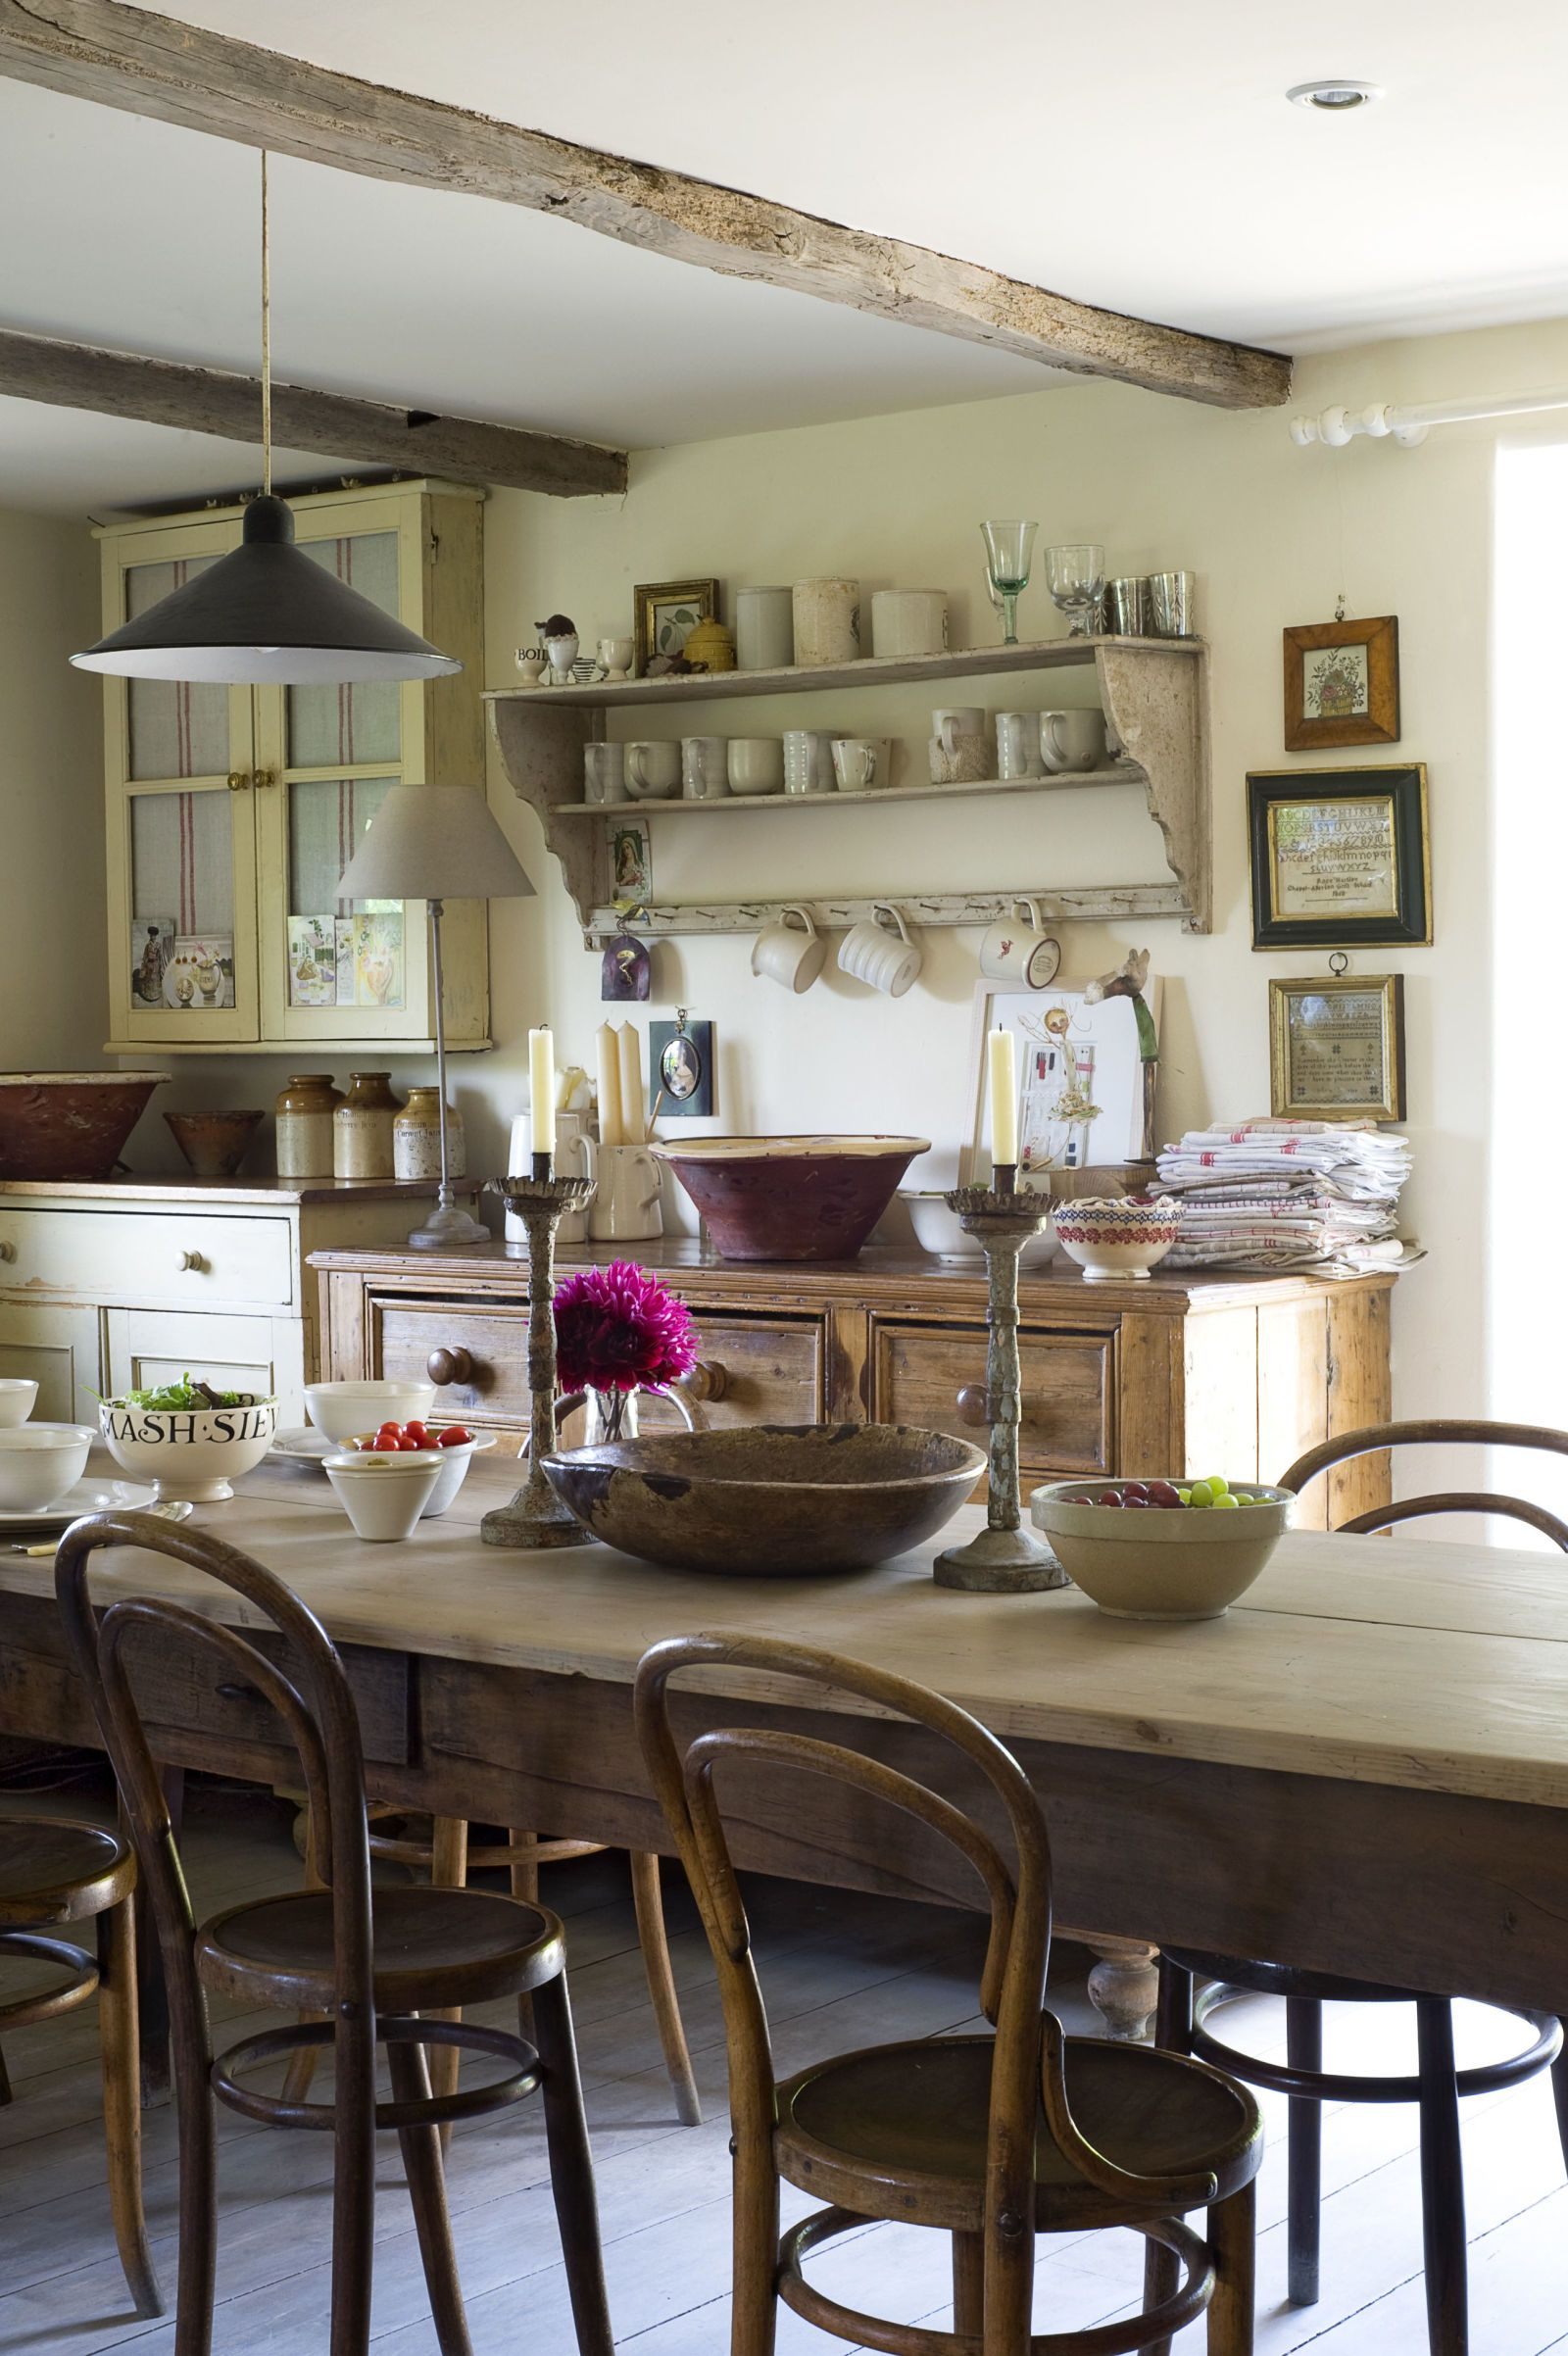 6 tips to make your kitchen feel brighter Country